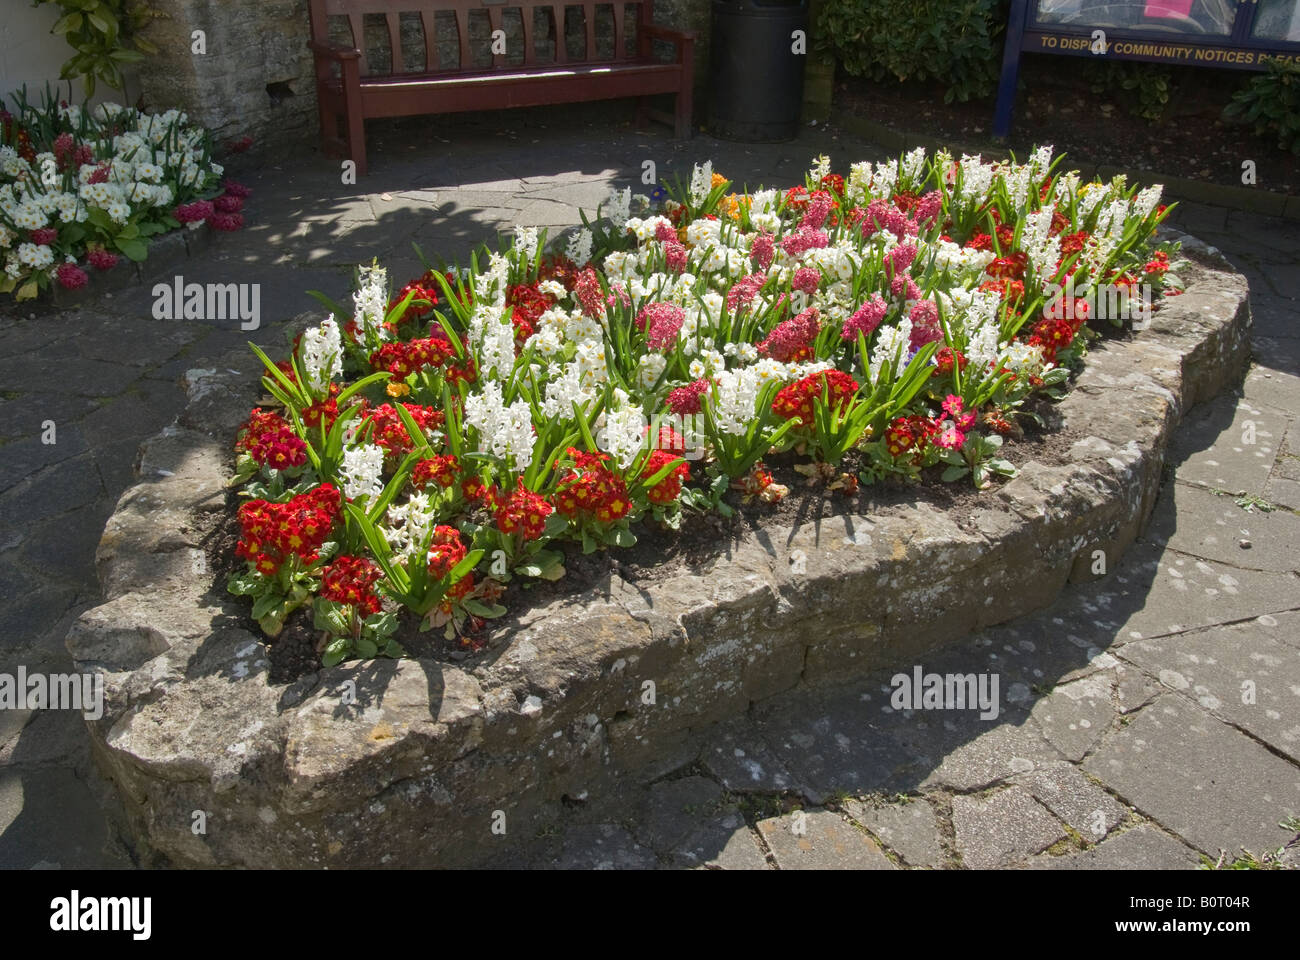 Narrow Raised Bed Of Spring Flowers In A Small Public Rest Area In